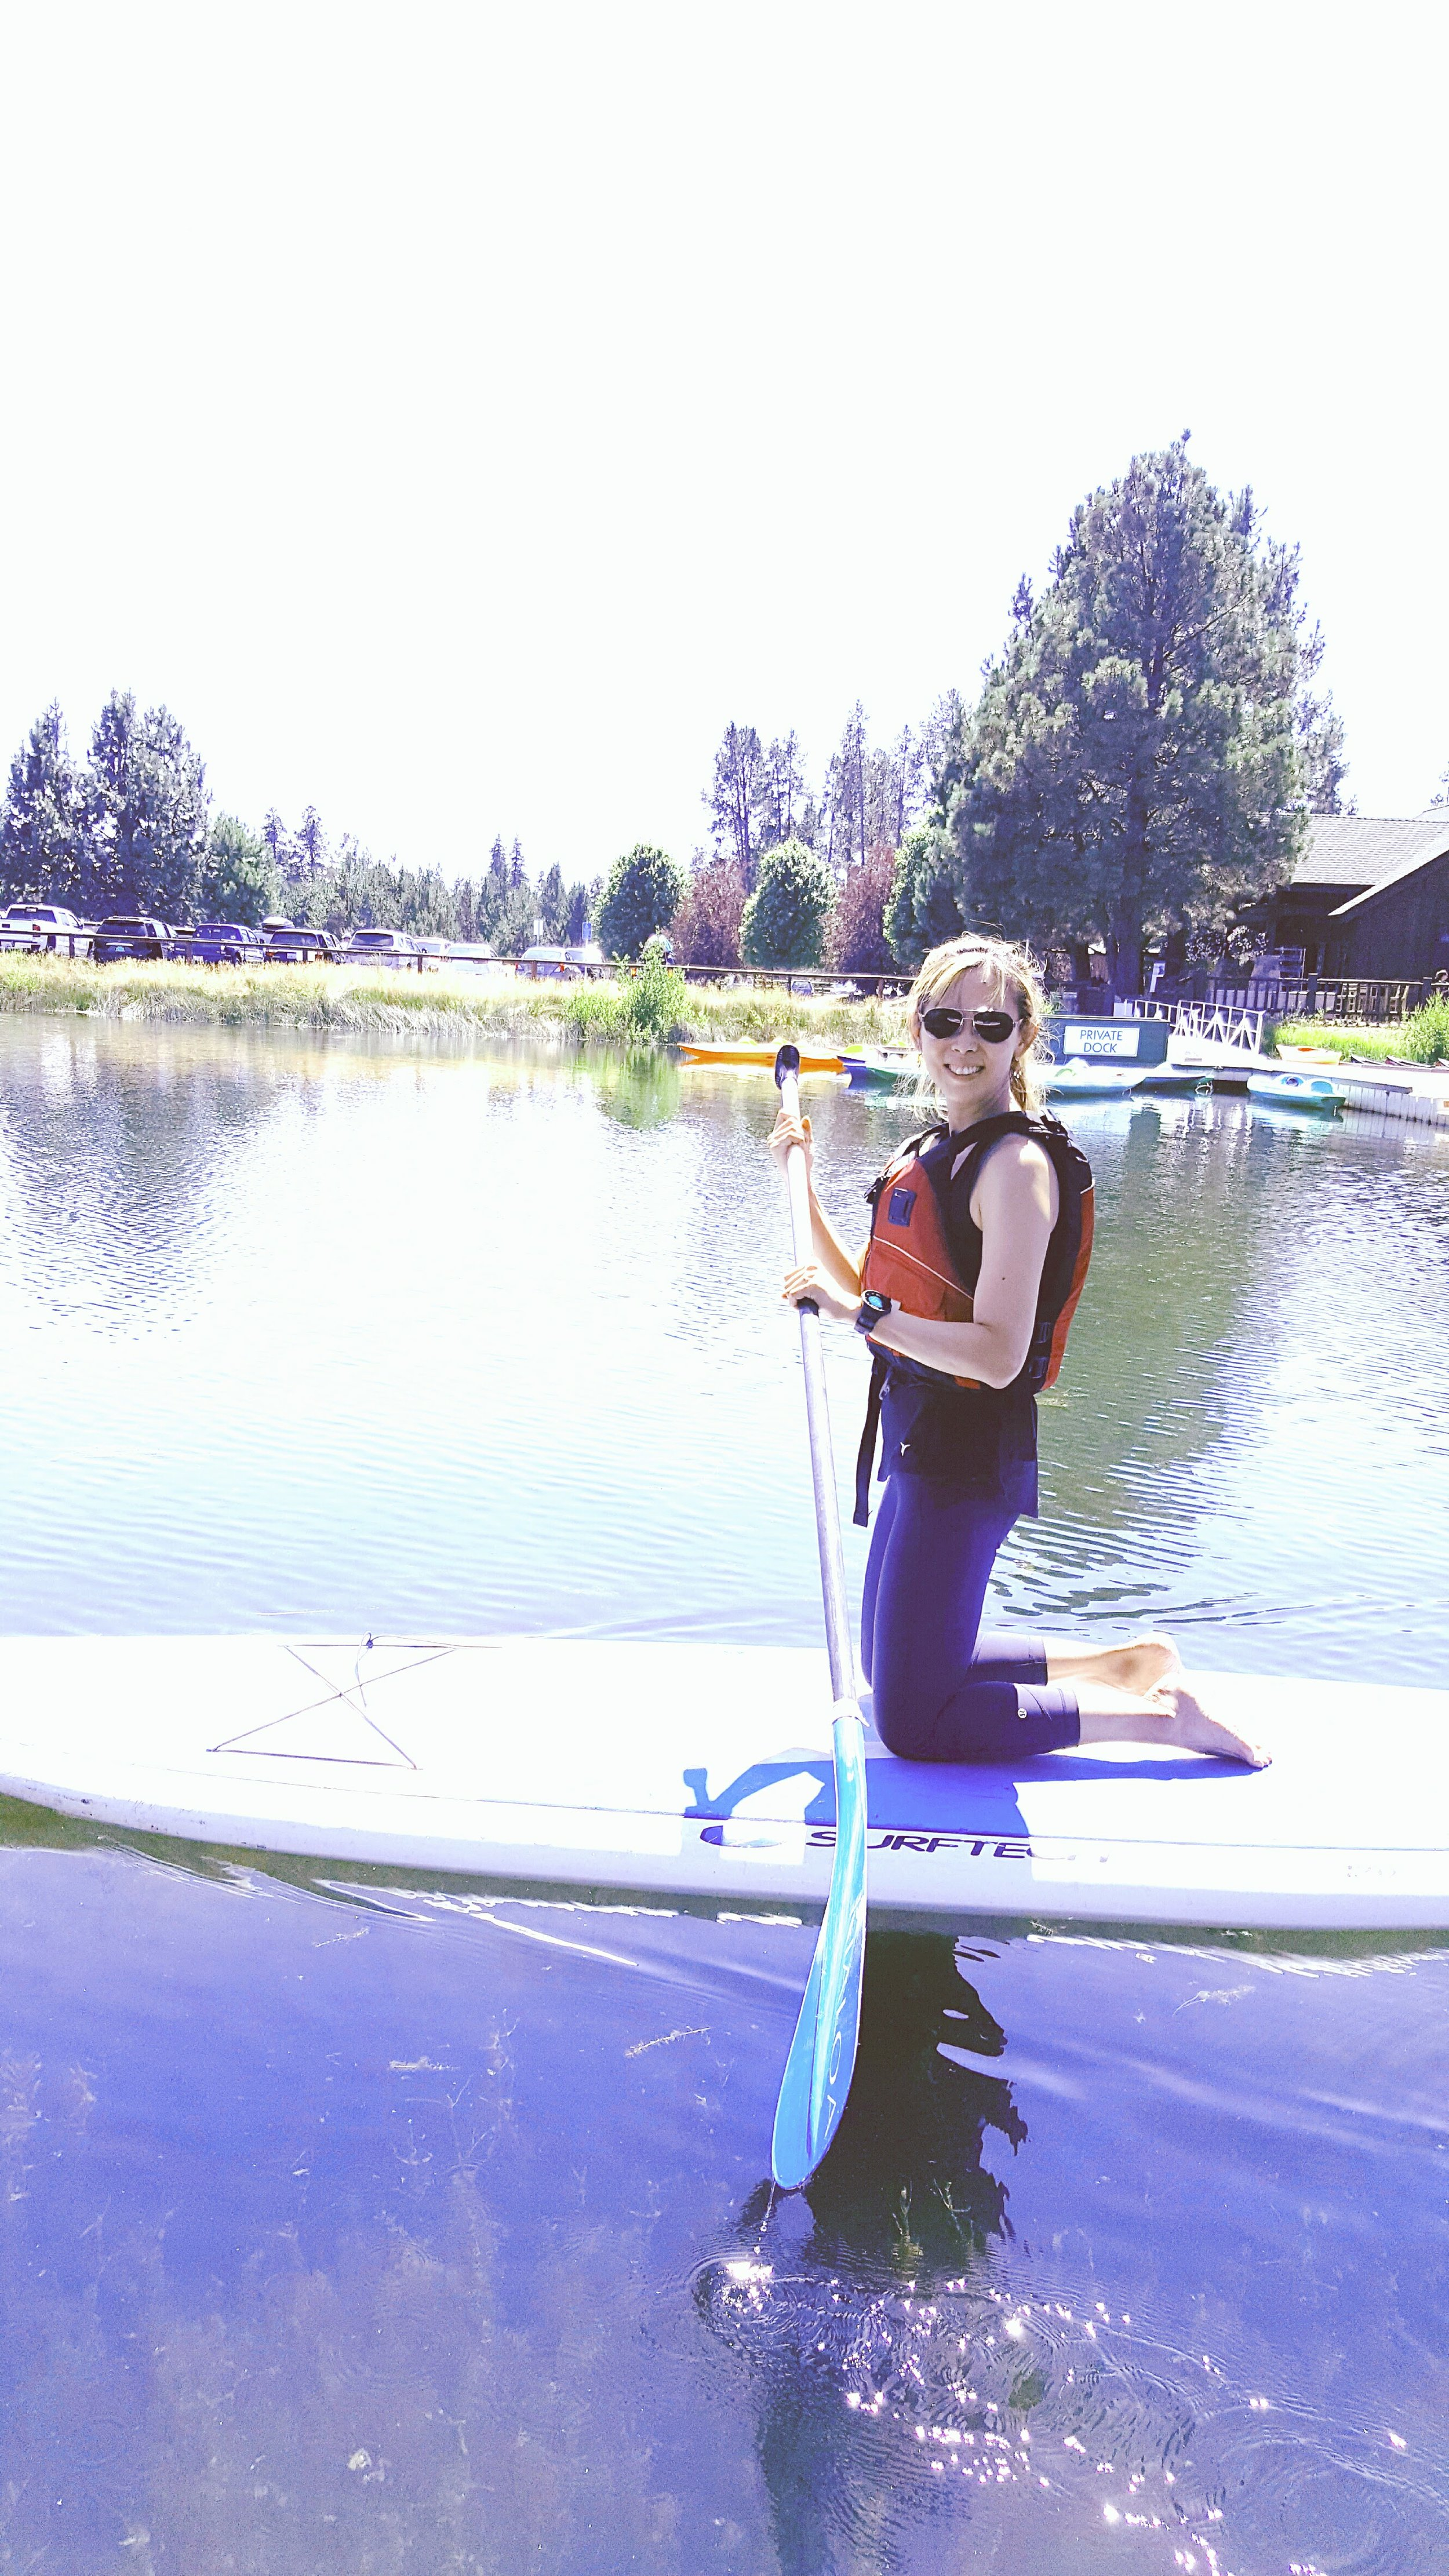 SUP-ing at Sunriver - finding balance is important both in life and on the paddle board